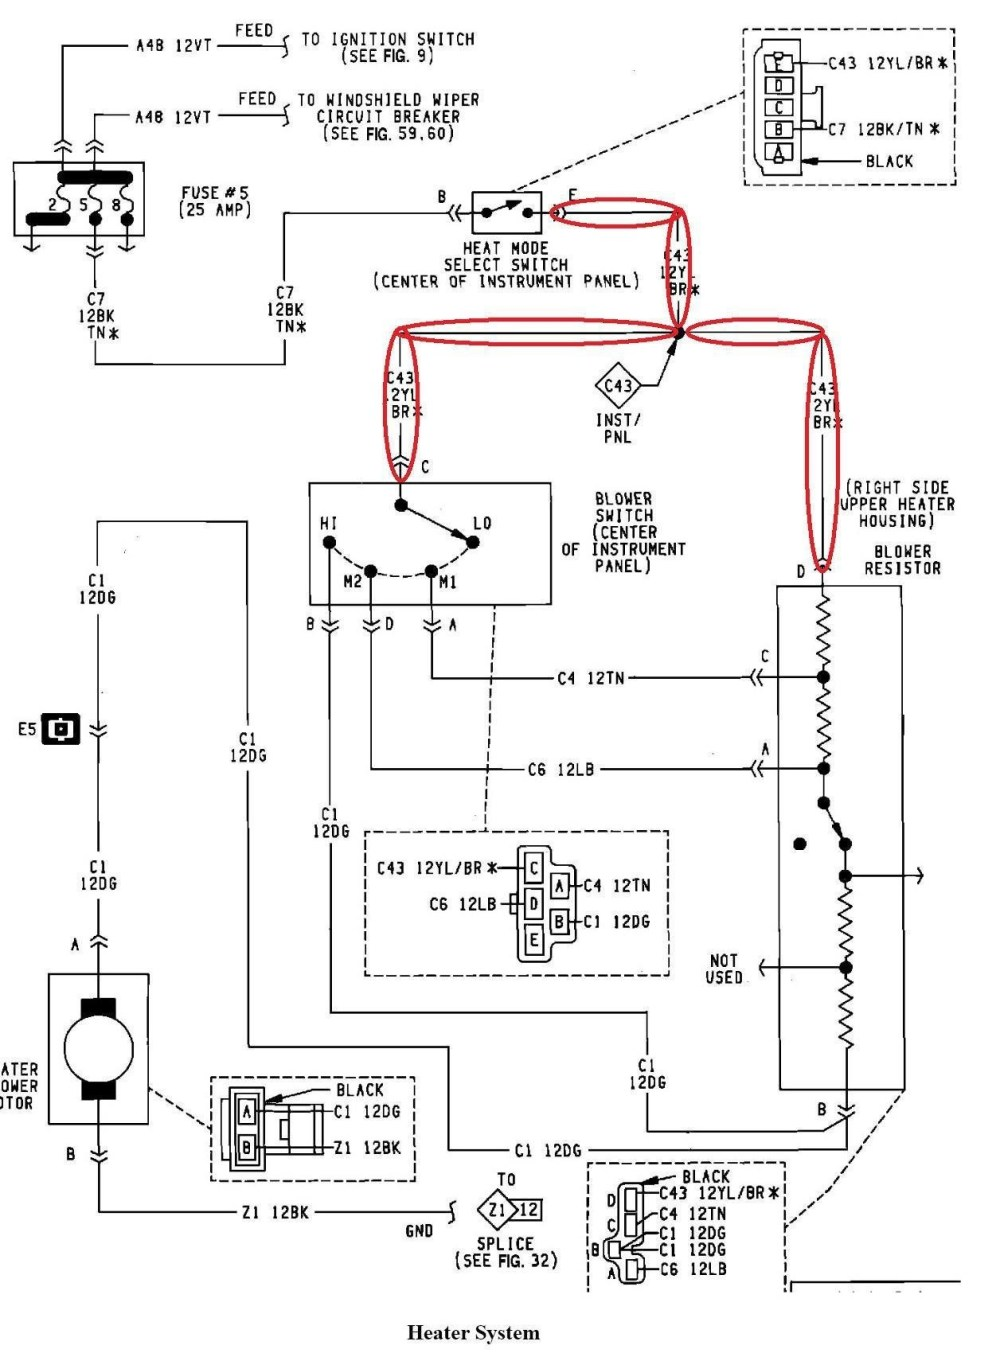 medium resolution of ezgo gas txt wiring diagram wiring diagram centre 1996 ezgo txt gas wiring diagram 1990 ezgo